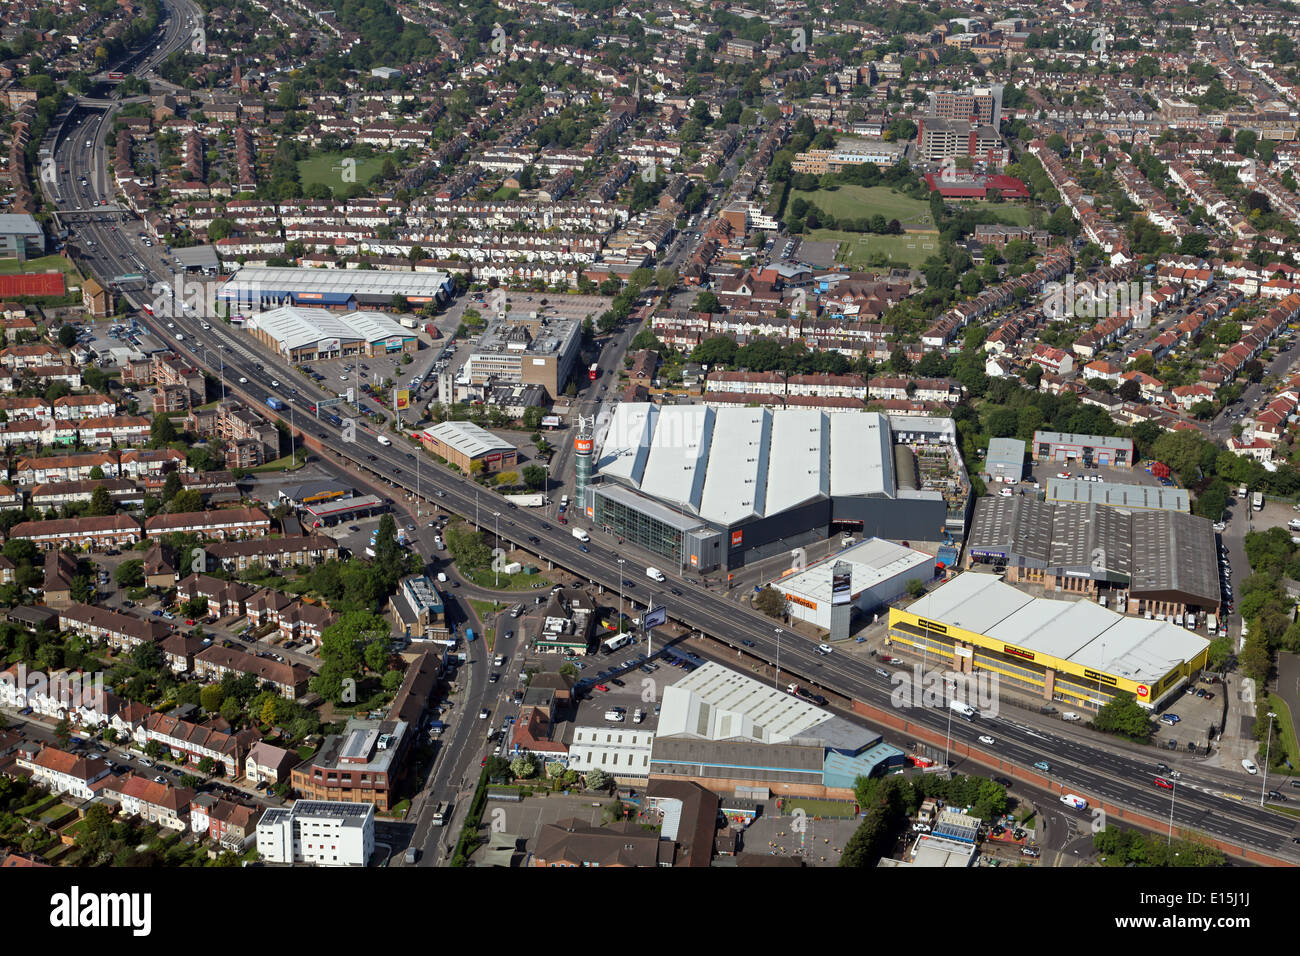 aerial view of the A3 main trunk road as it sweeps through New Malden in south west London - Stock Image